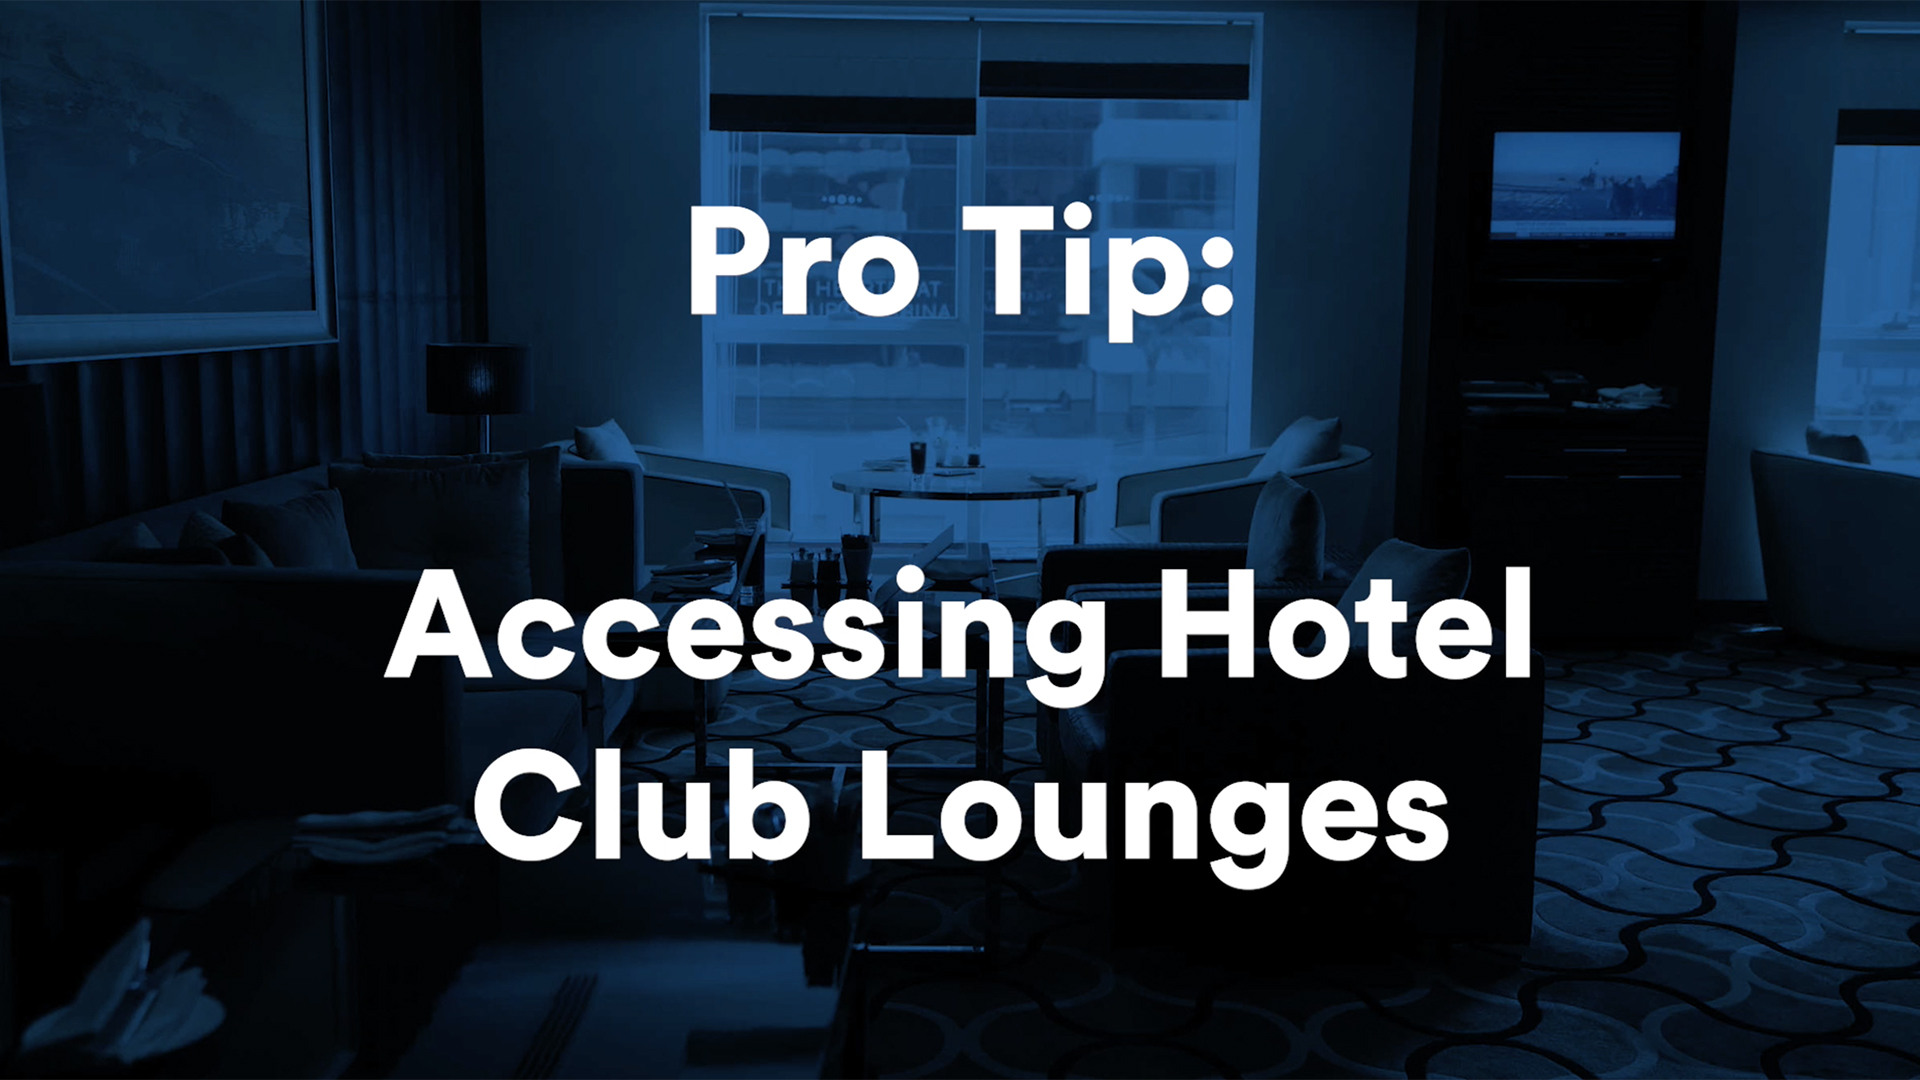 Here's Why You Need Access to Hotel Club Lounges